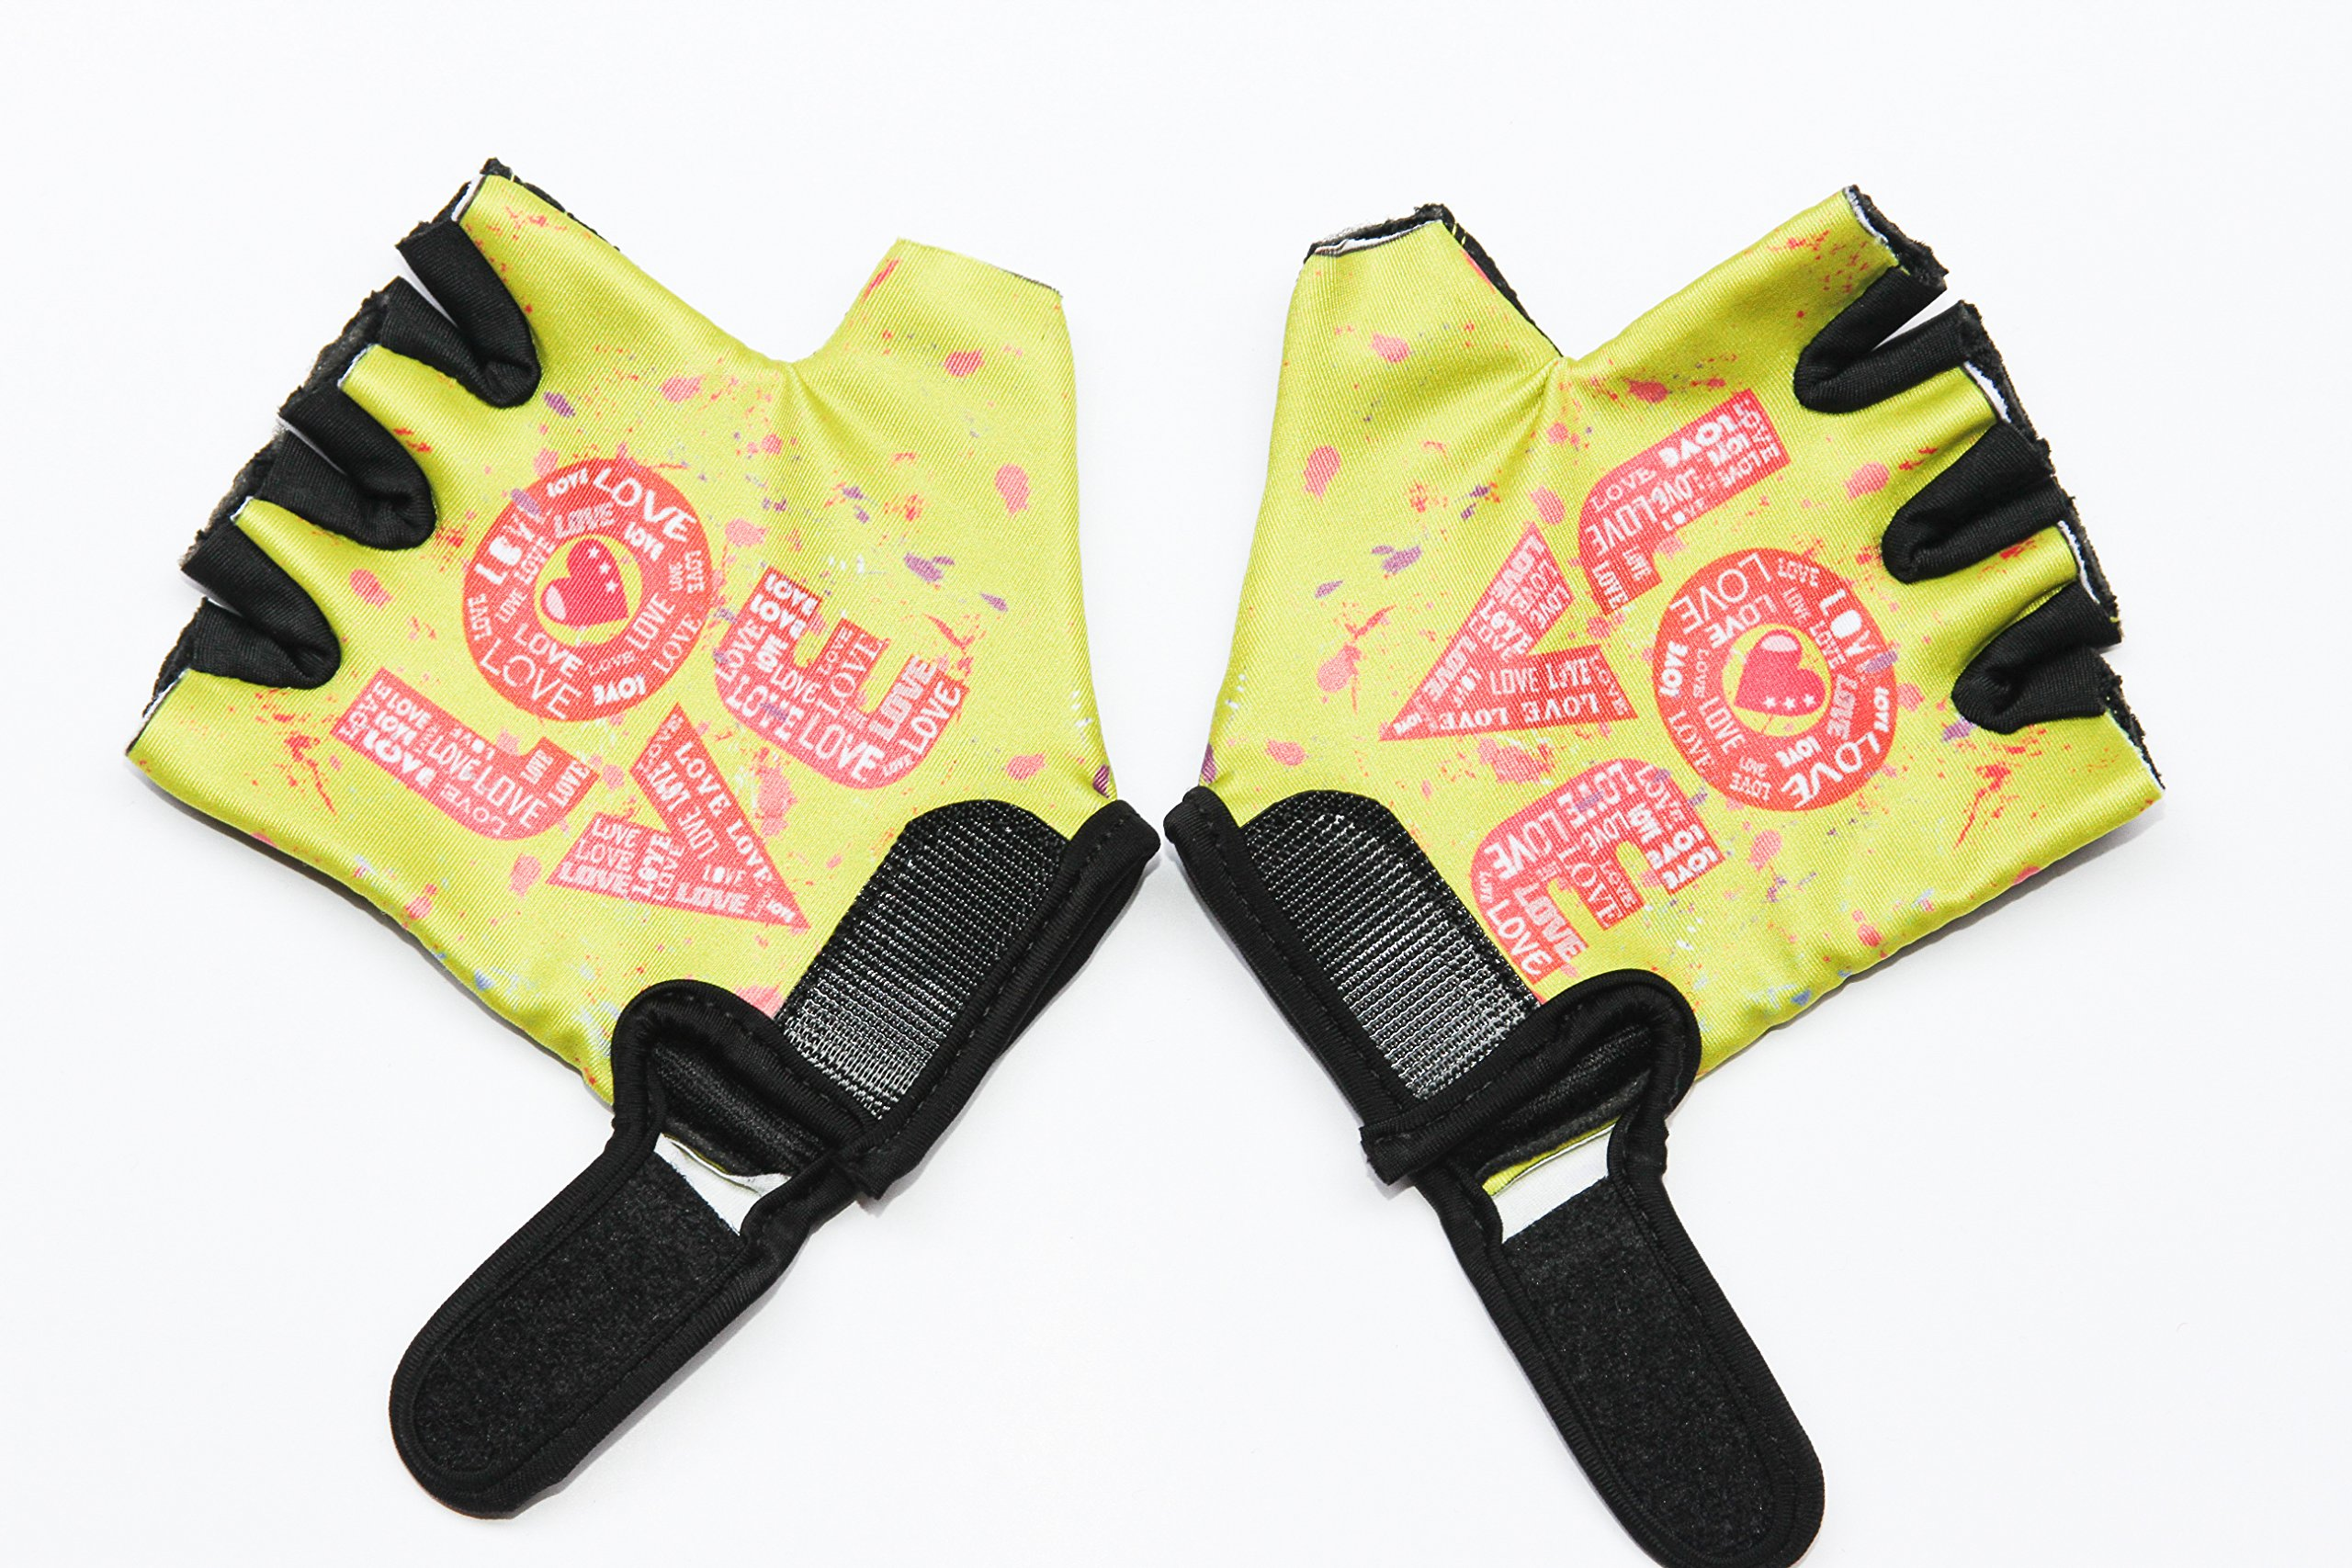 HANG Monkey Bars Gloves (for Children 7 and 8 Years Old) with Grip Control by HANG (Image #1)